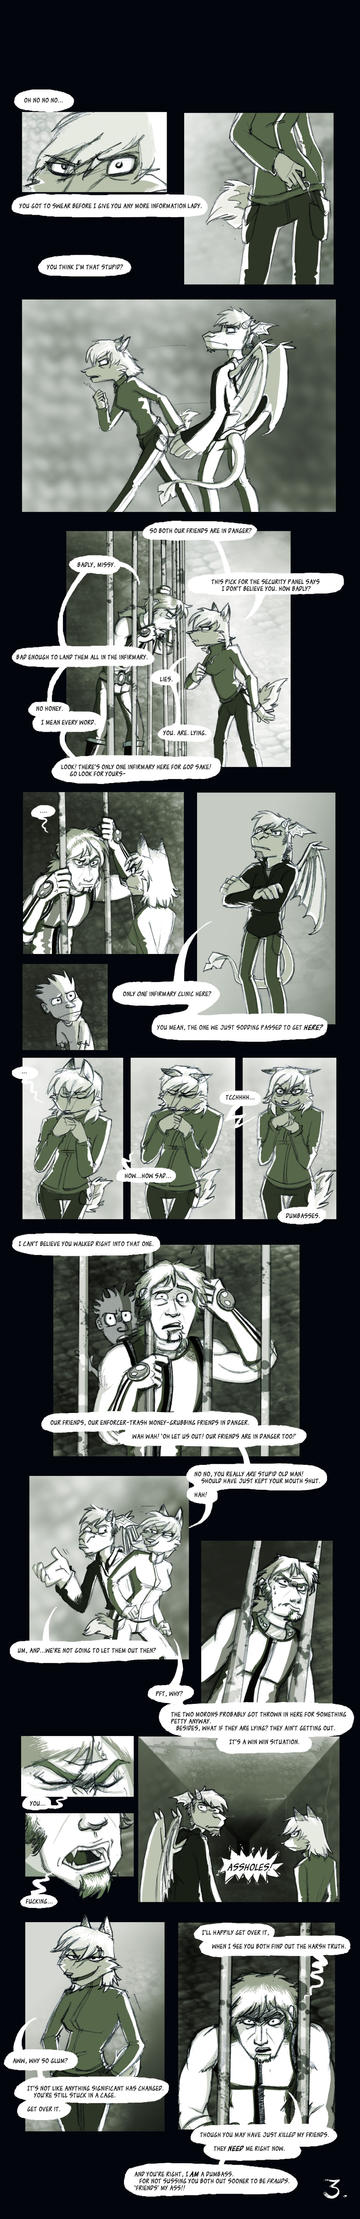 TC Criminal Choice Ch 2. Pg 3. by shazmatthews